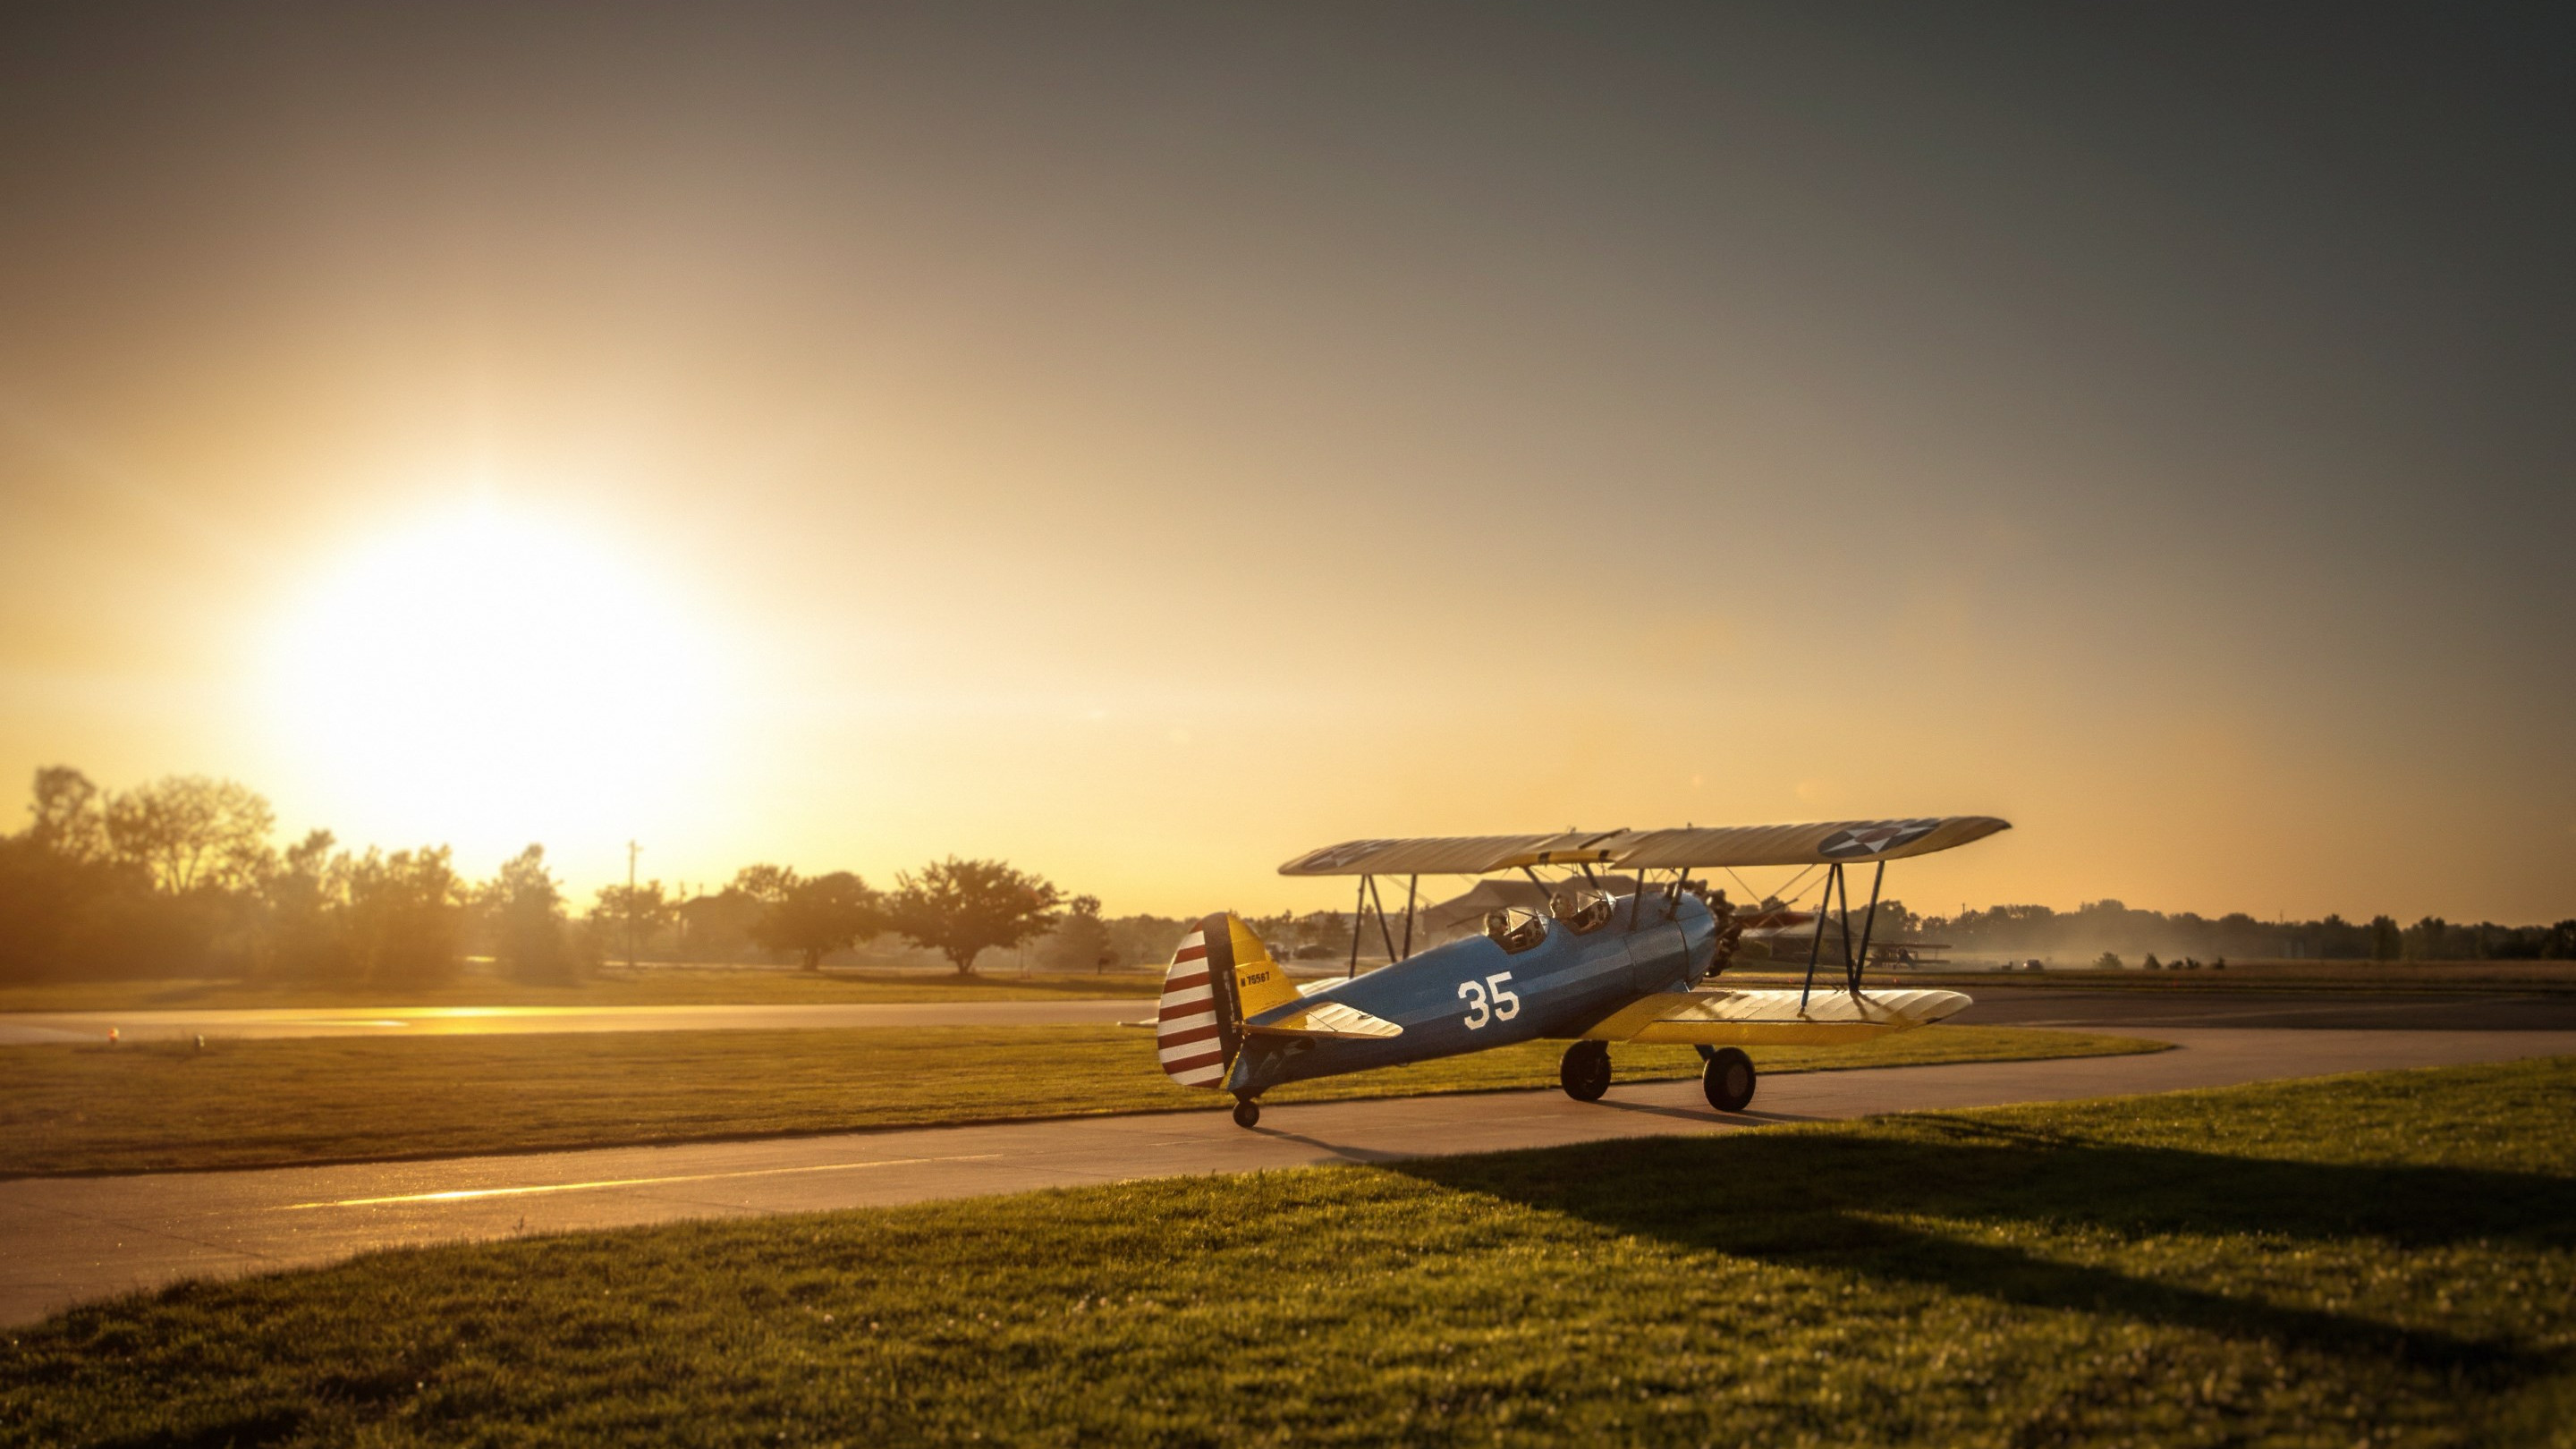 Boeing Stearman Airplane wallpaper 2880x1620